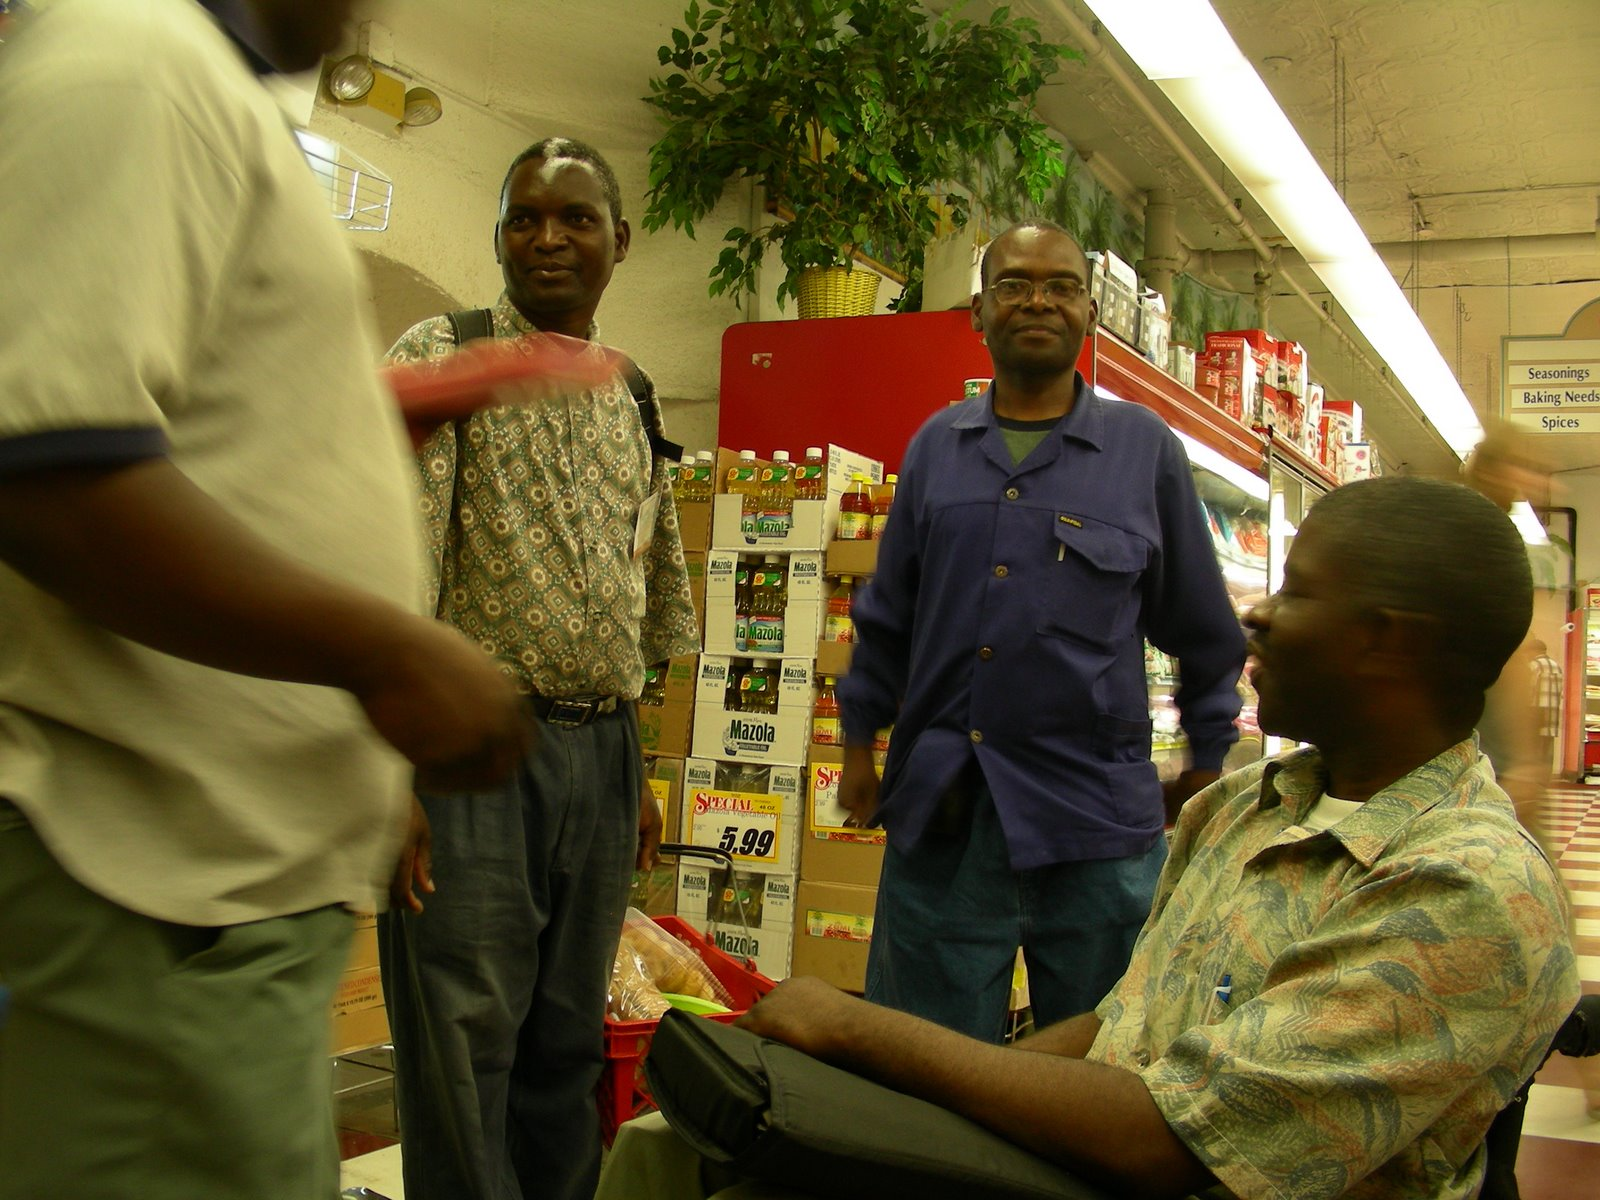 [Zambians+buying+some+traditional+food]